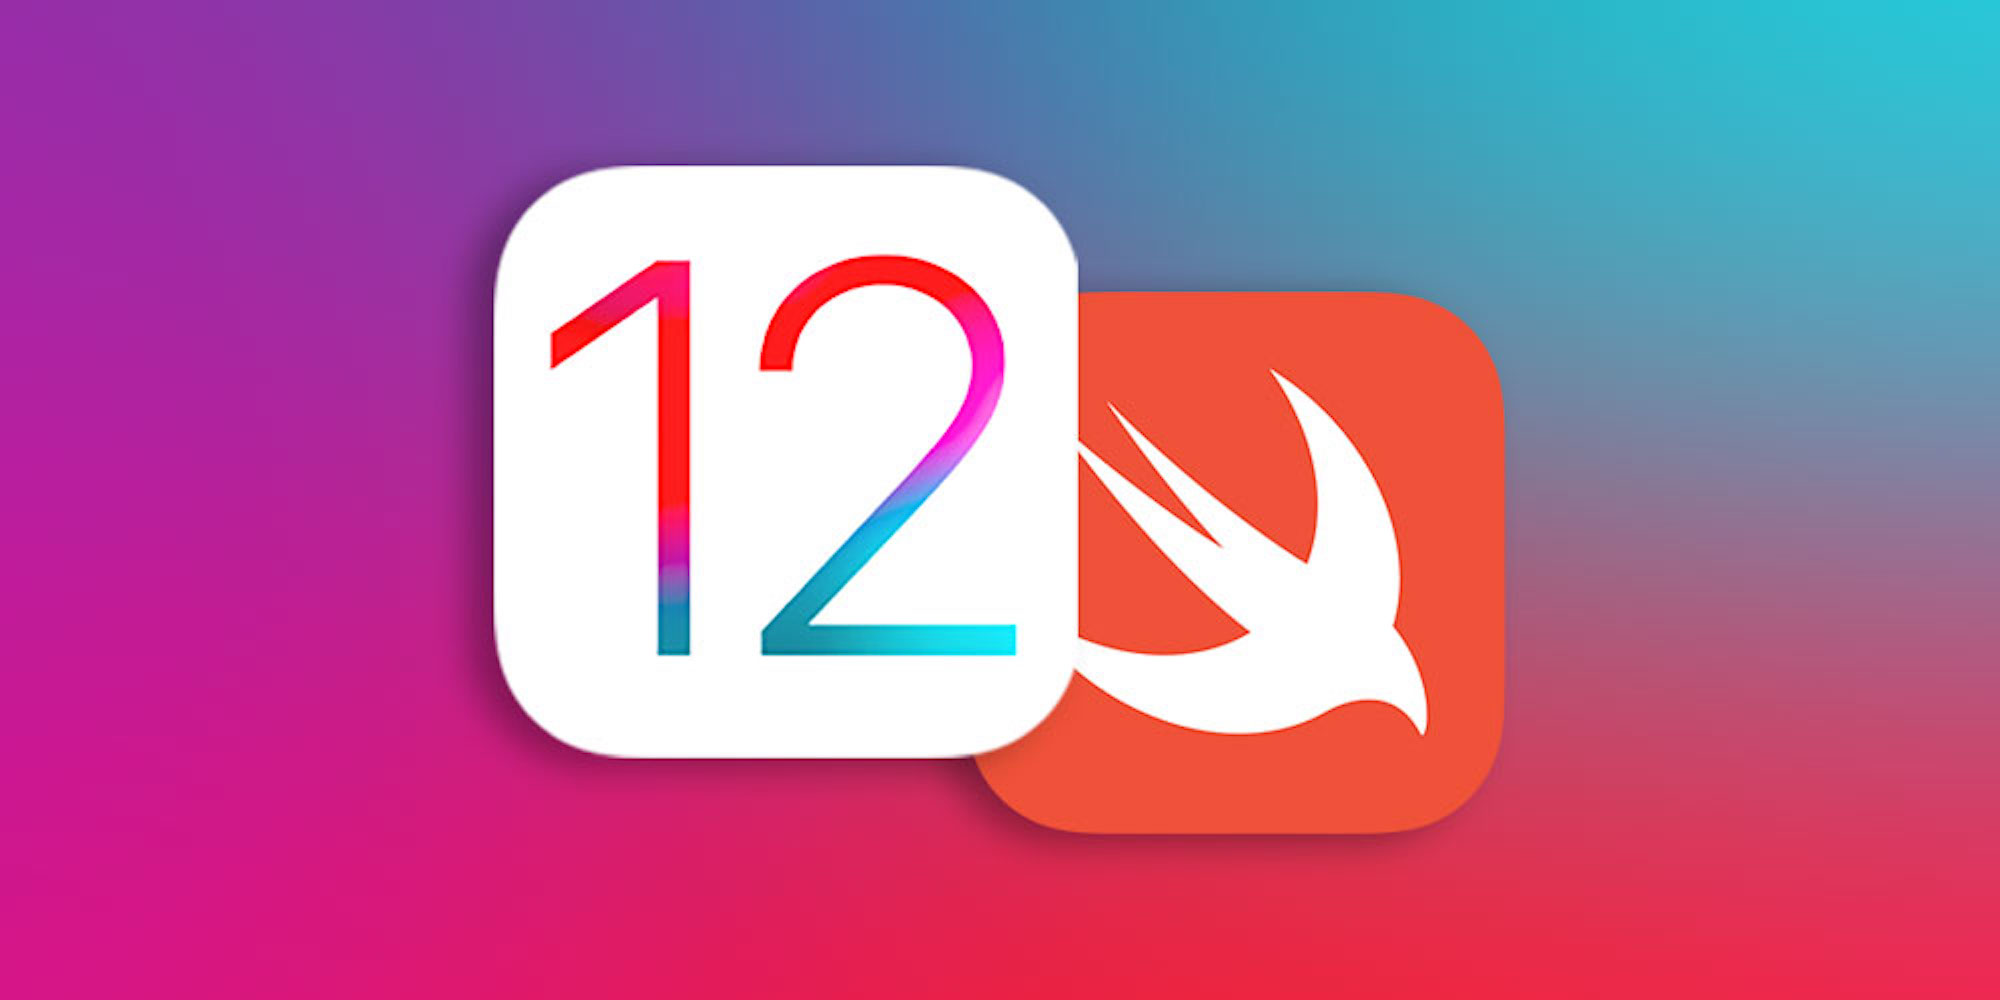 Learn to build iOS 12 apps with 43 hours of training for $11